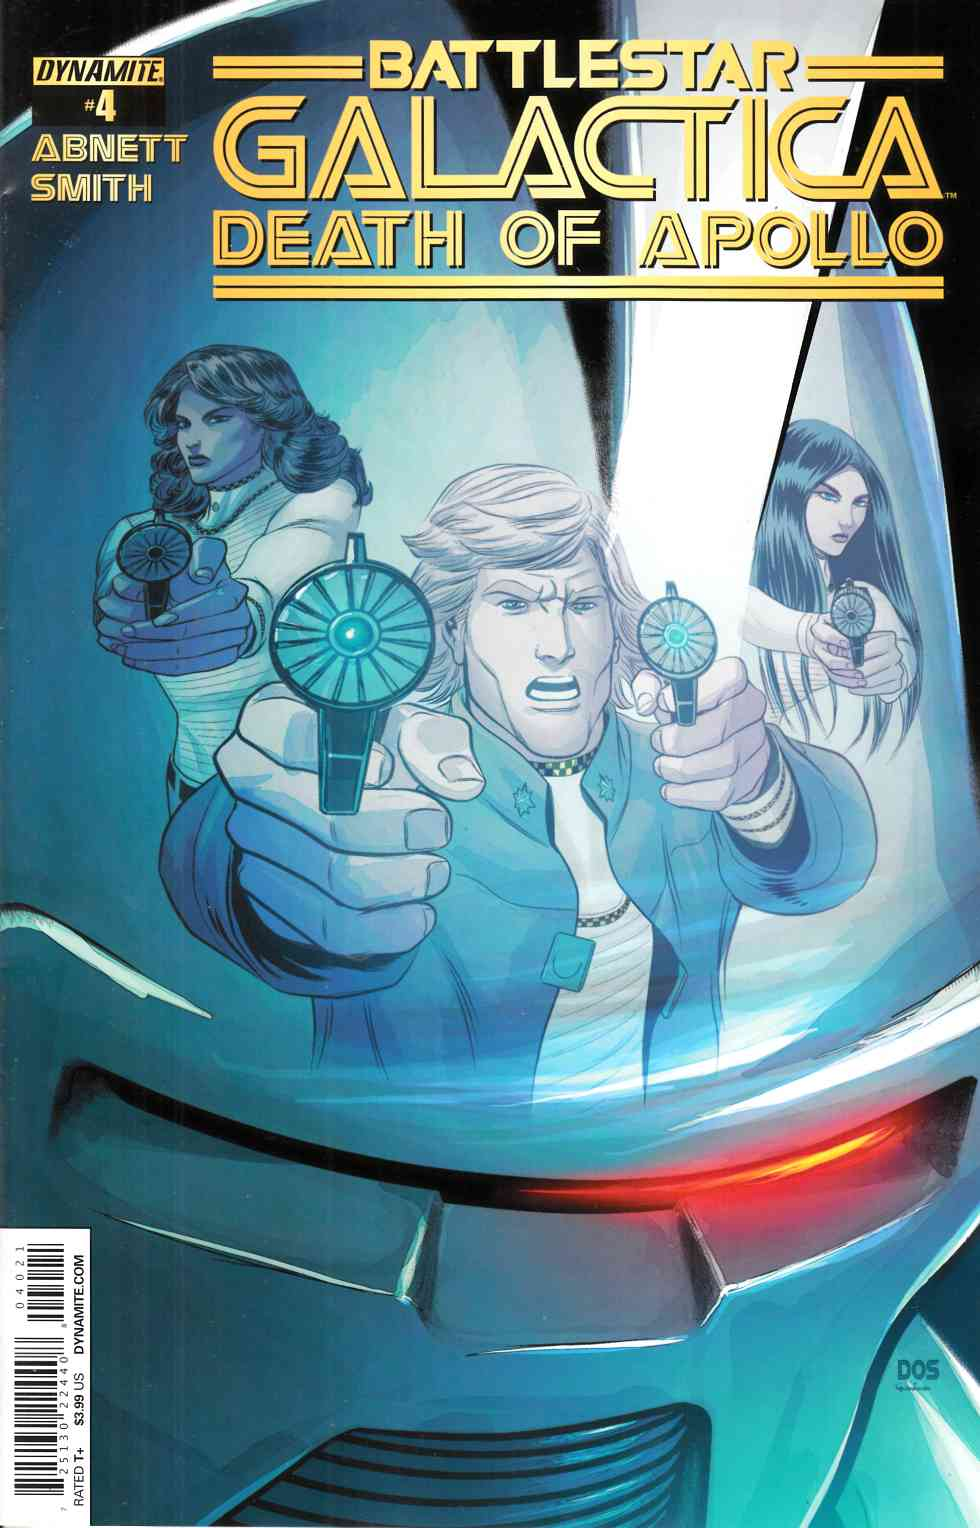 Battlestar Galactica Death of Apollo #4 Cover B- Smith [Dynamite Comic] THUMBNAIL